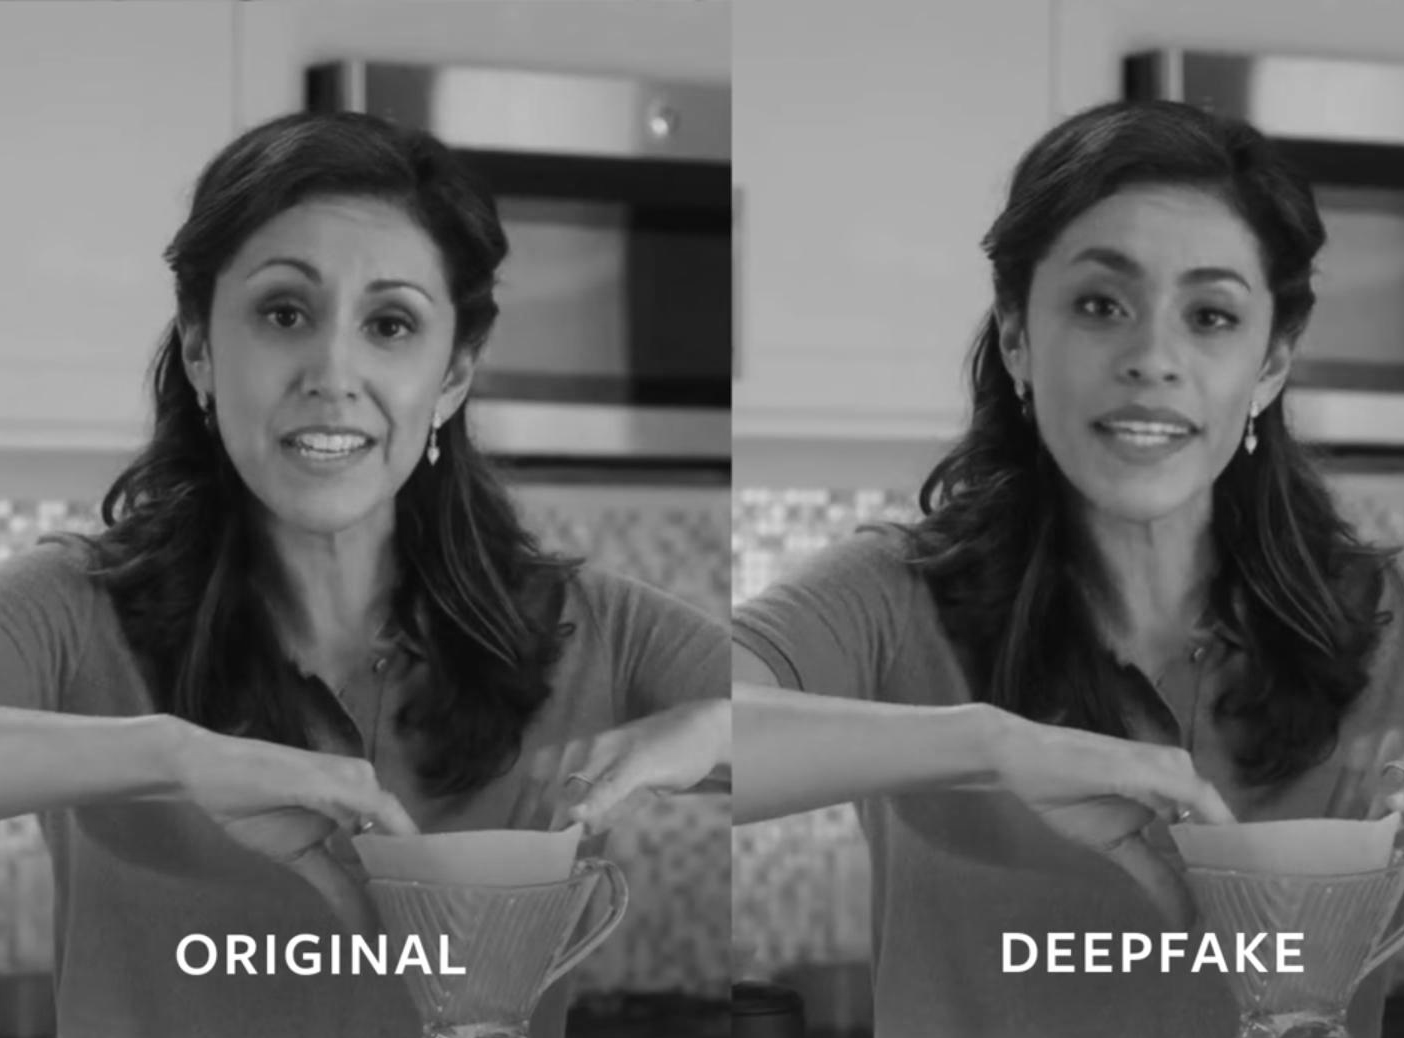 WHAT'S NEEDED IN DEEPFAKES DETECTION